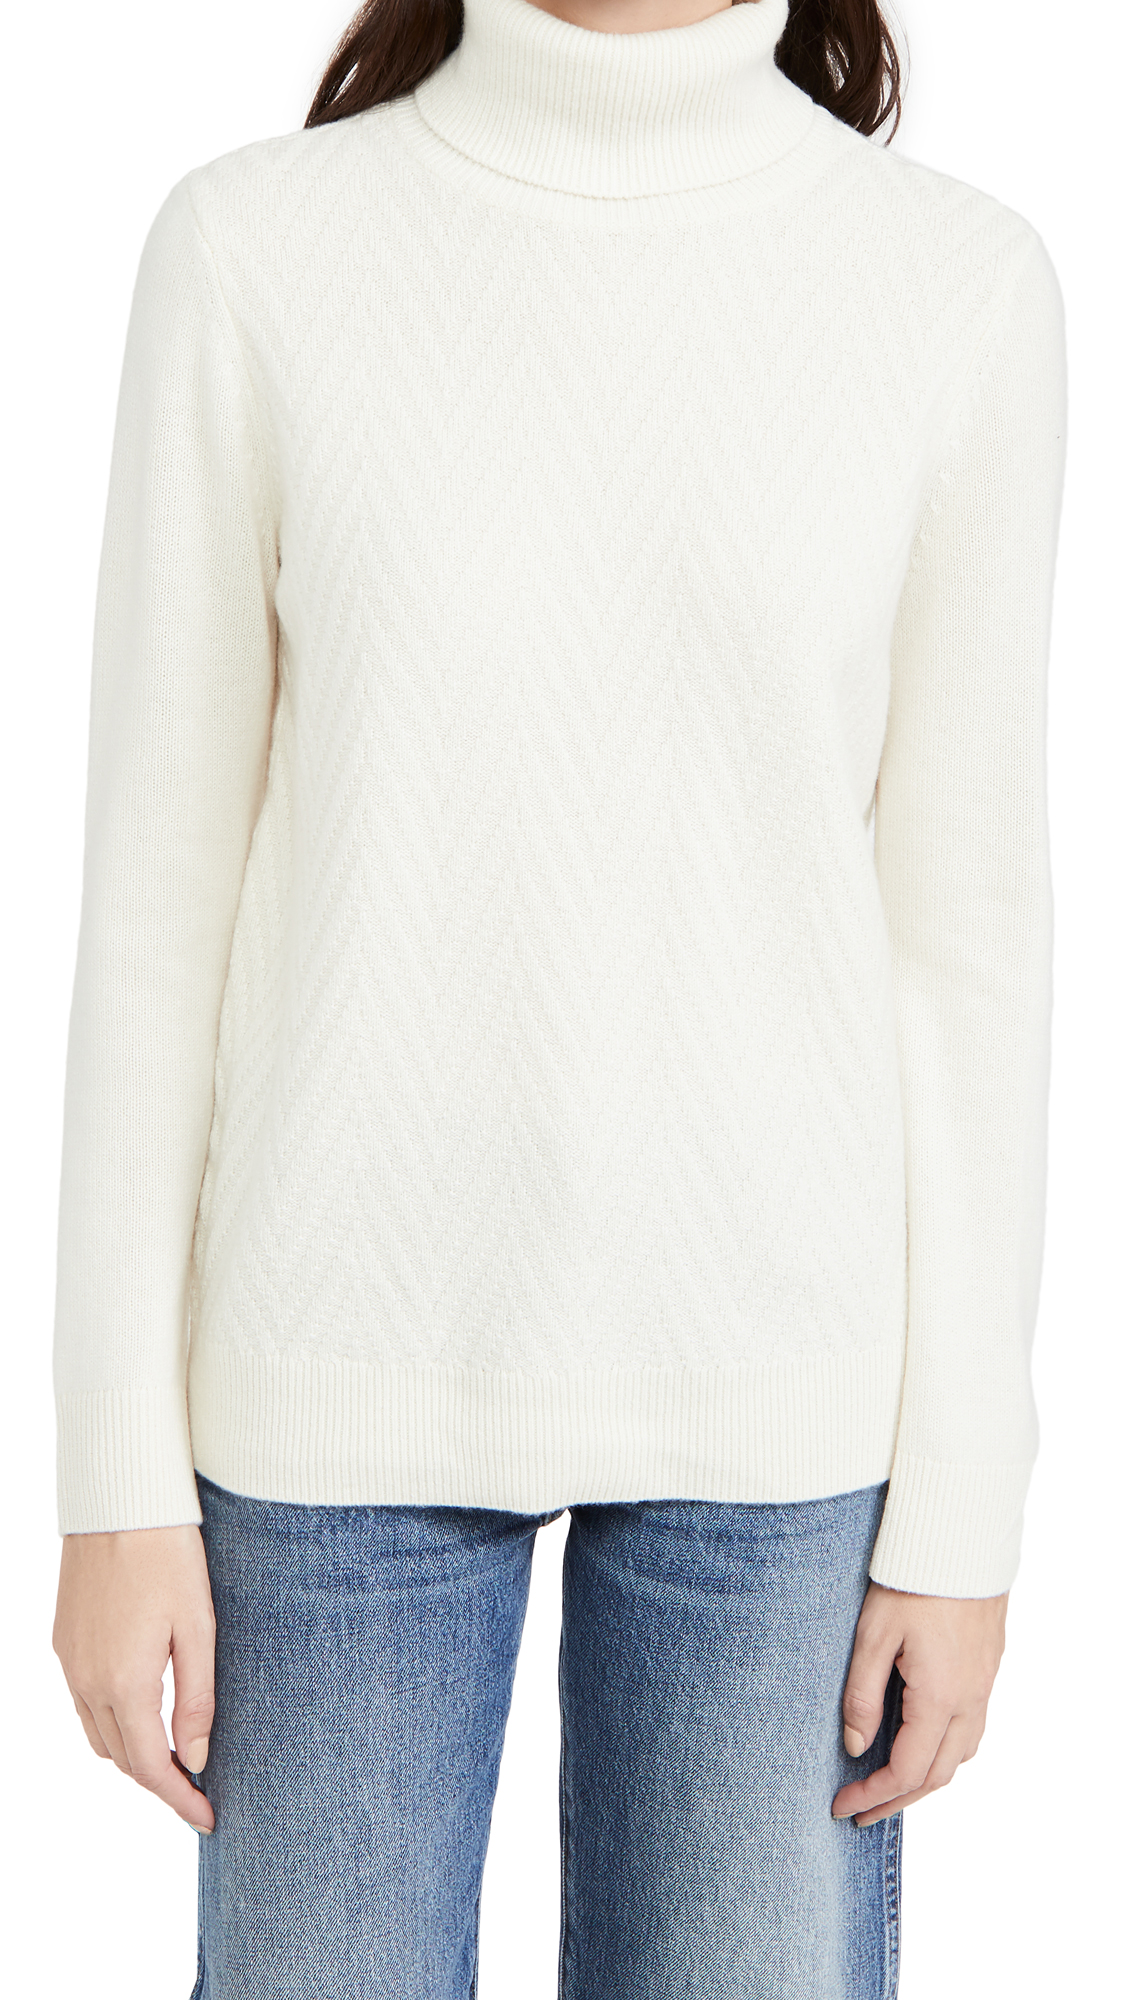 Club Monaco Cashmeres MIXED STITCH TURTLENECK SWEATER